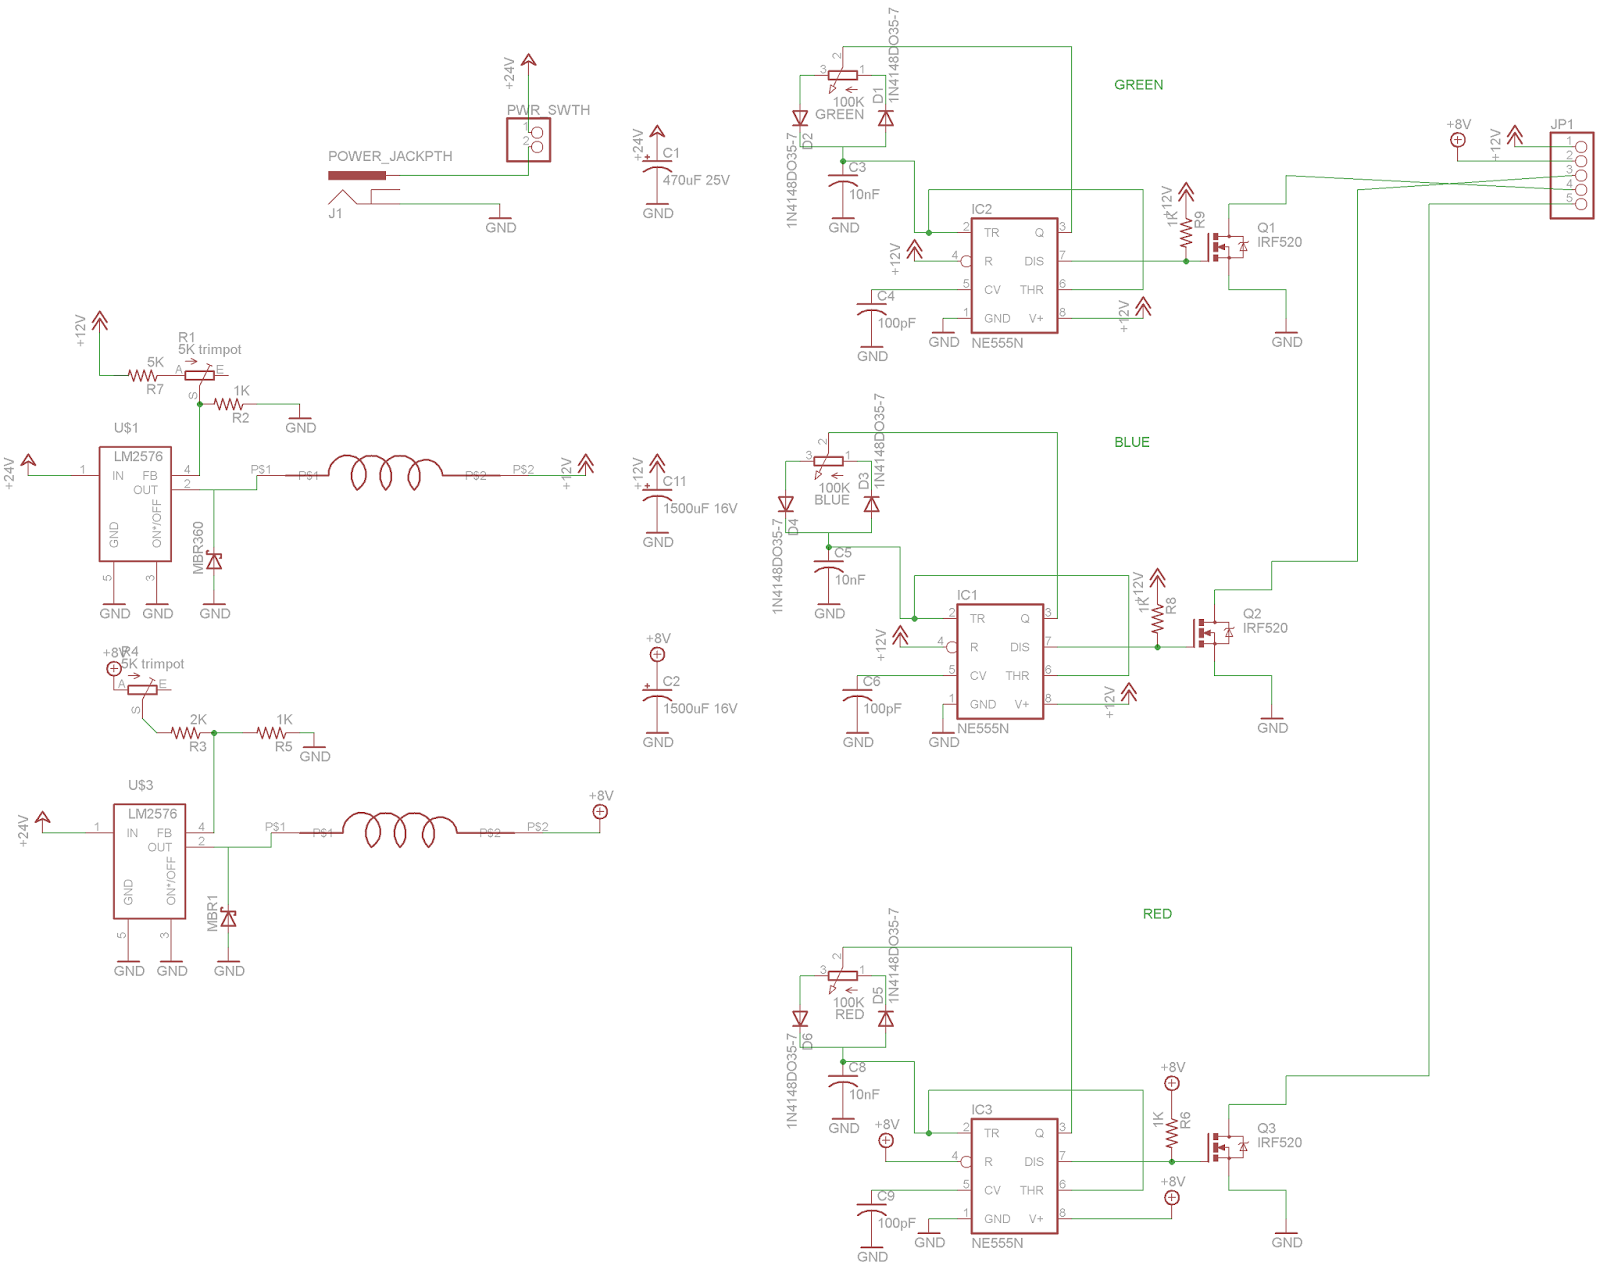 Misadventures Trim Pot Wiring Complete With Lazily Drawn Inductors